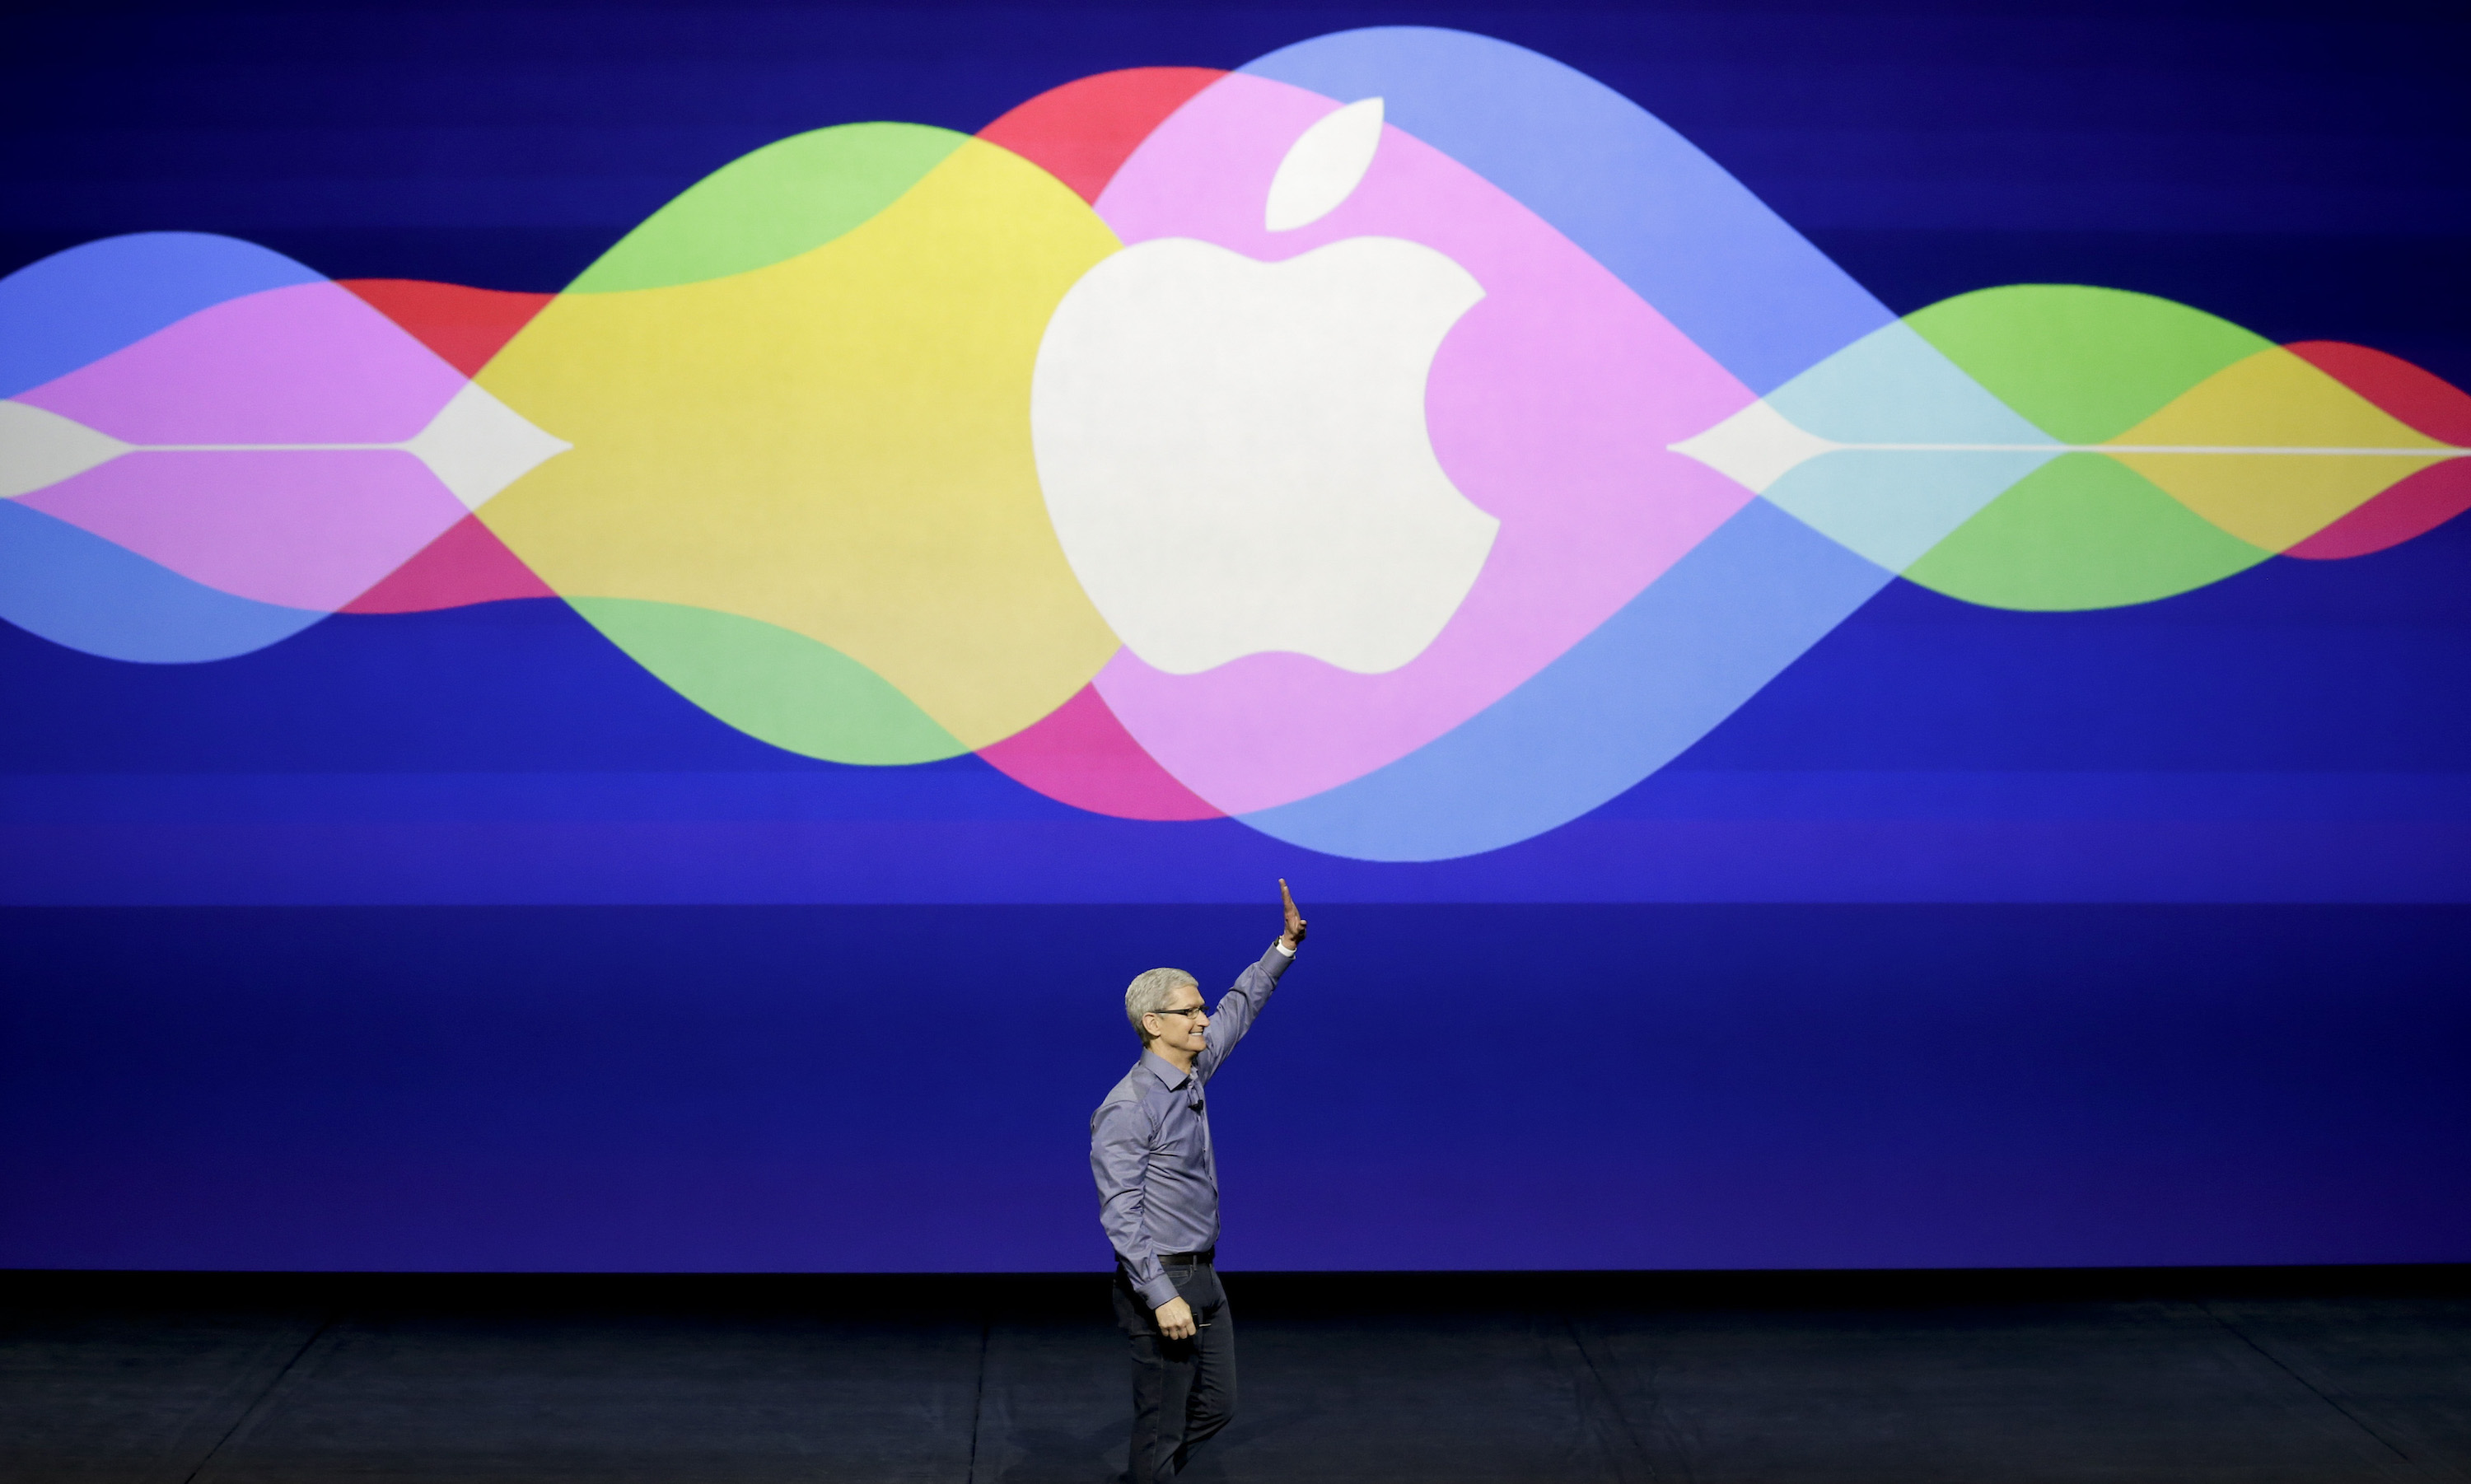 Apple CEO Tim Cook waves during the Apple event at the Bill Graham Civic Auditorium in San Francisco, Wednesday, Sept. 9, 2015. (AP Photo/Eric Risberg)